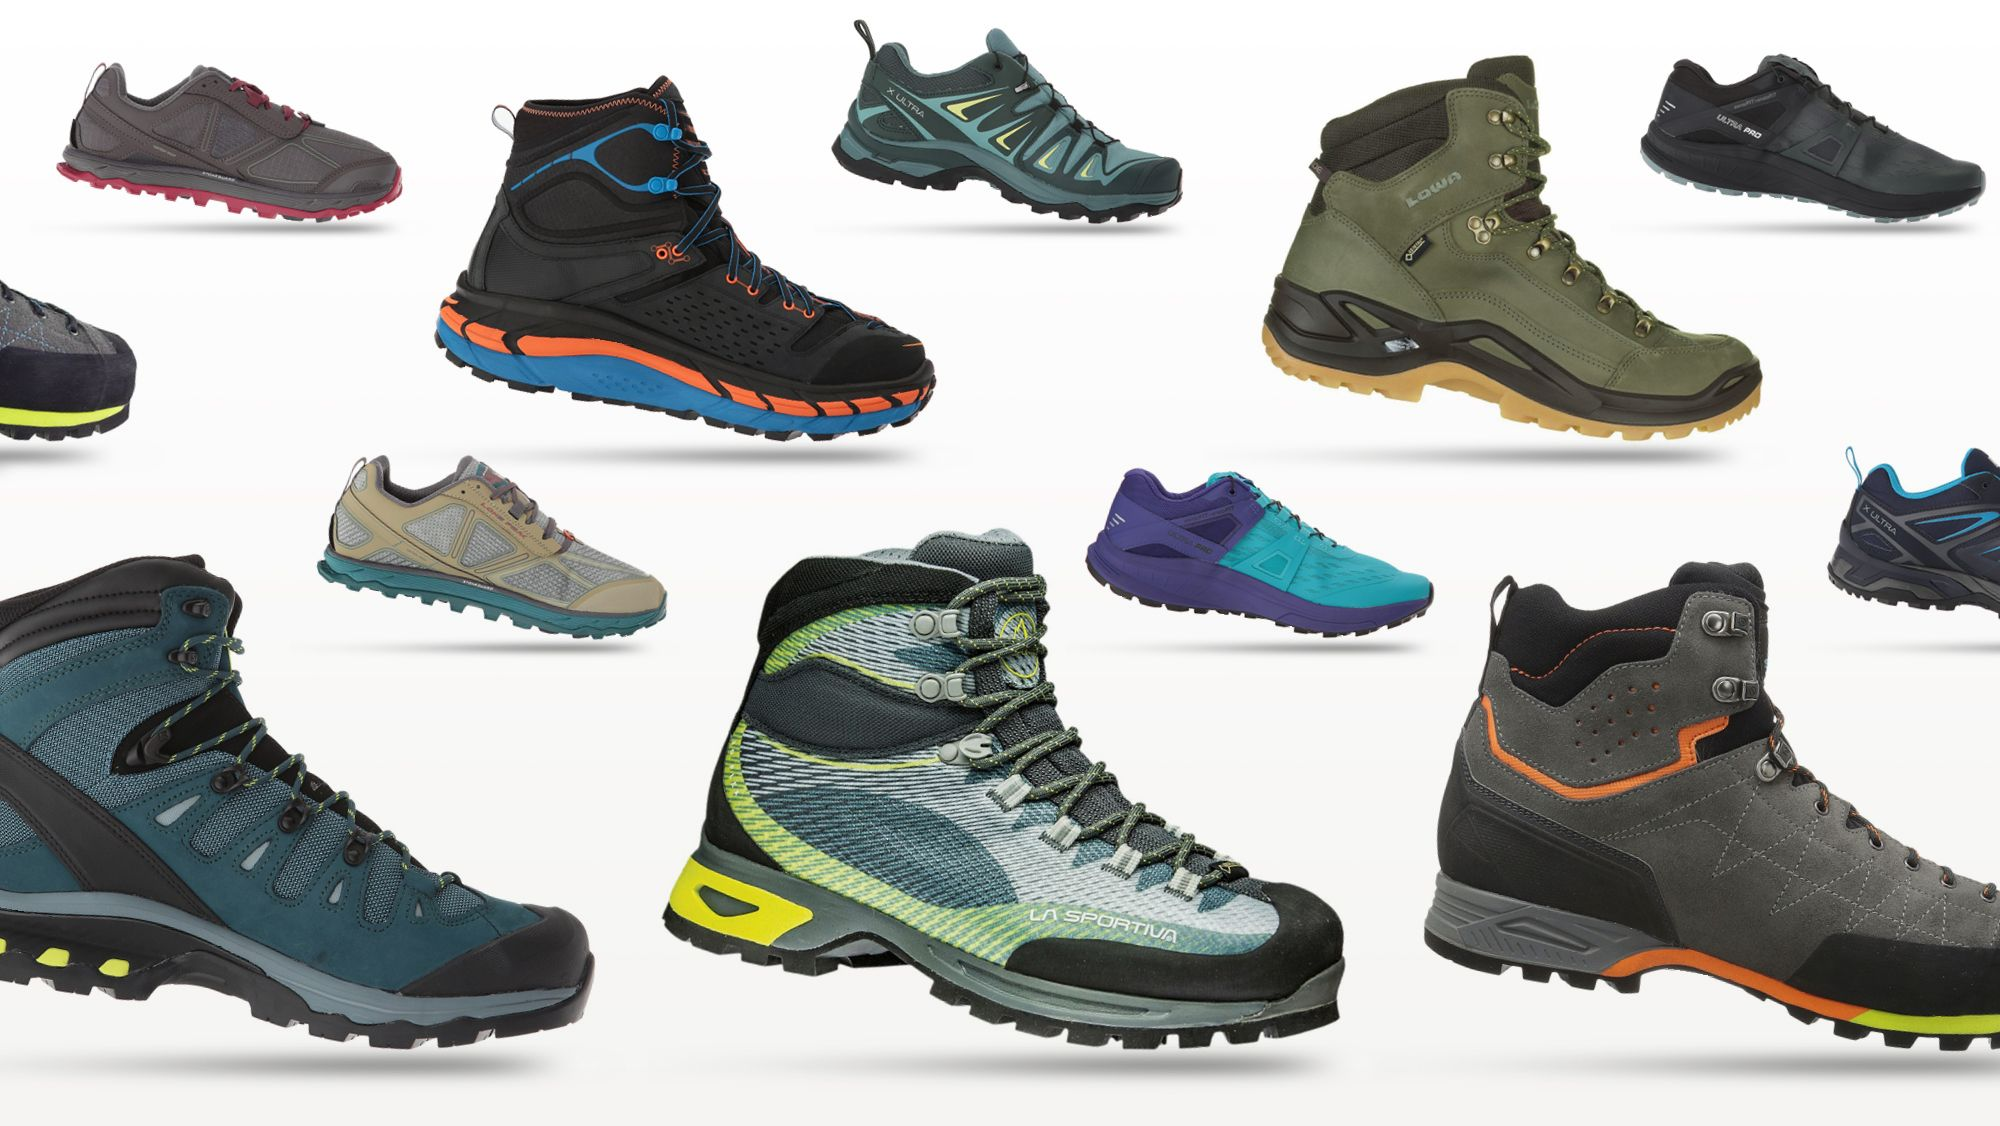 Best Women S Hiking Boots For Wide Feet - Expert Blog